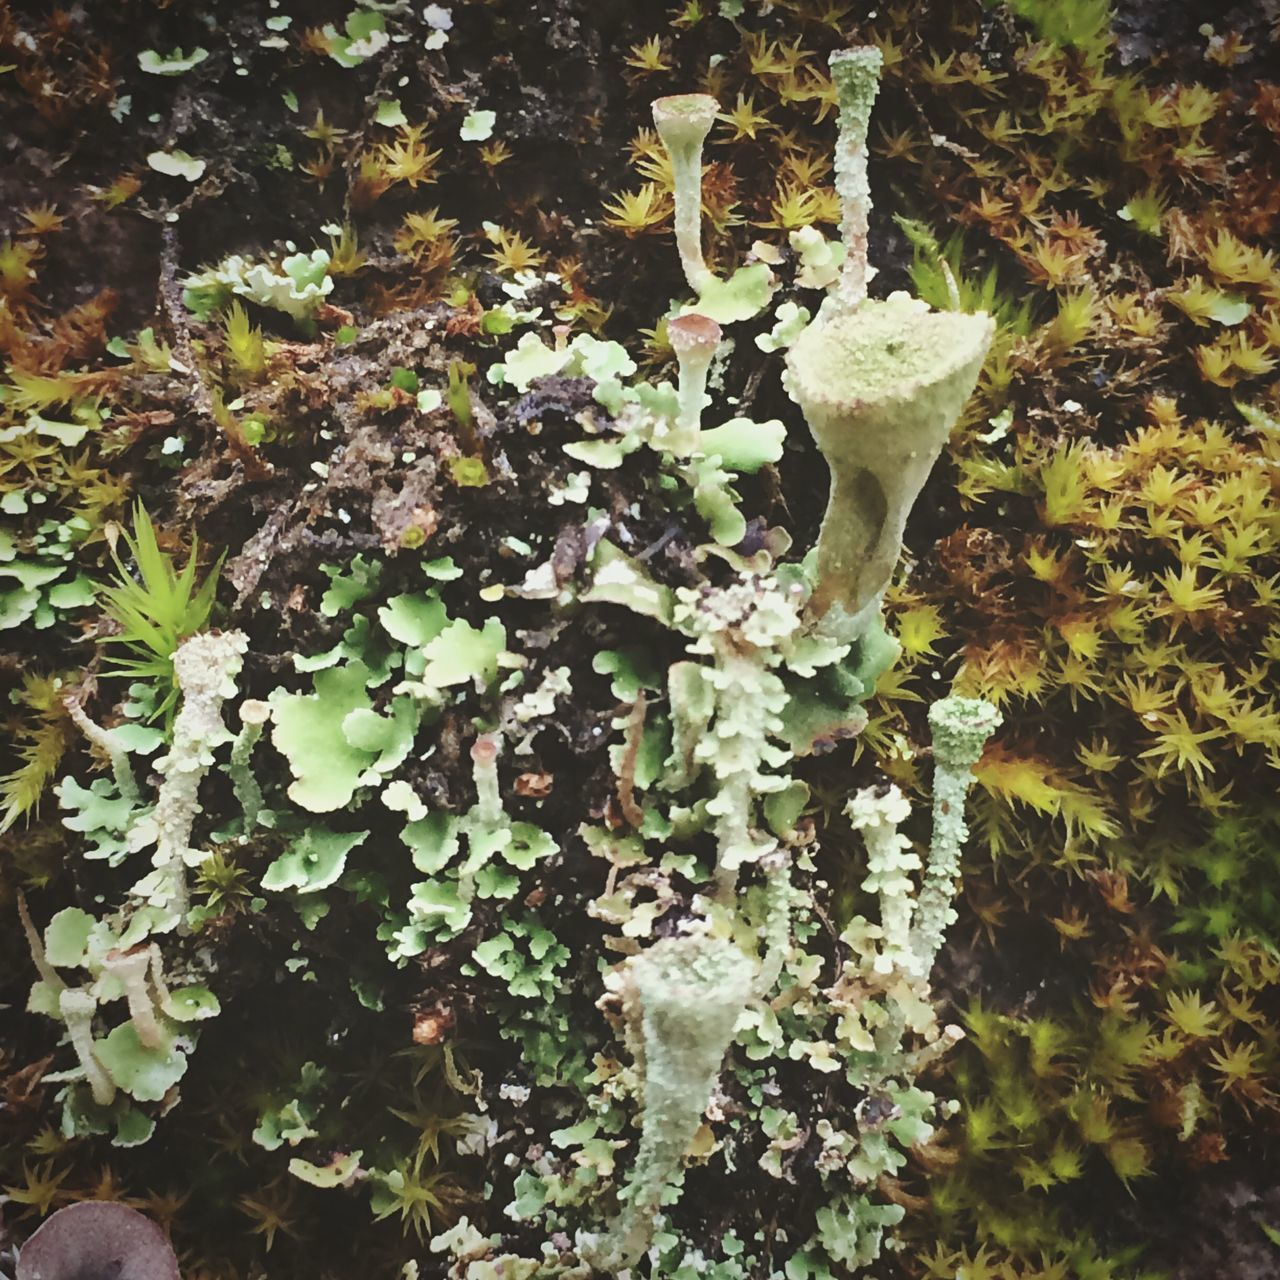 growth, nature, leaf, plant, beauty in nature, fragility, no people, tranquility, day, outdoors, green color, close-up, lichen, fungus, freshness, tree